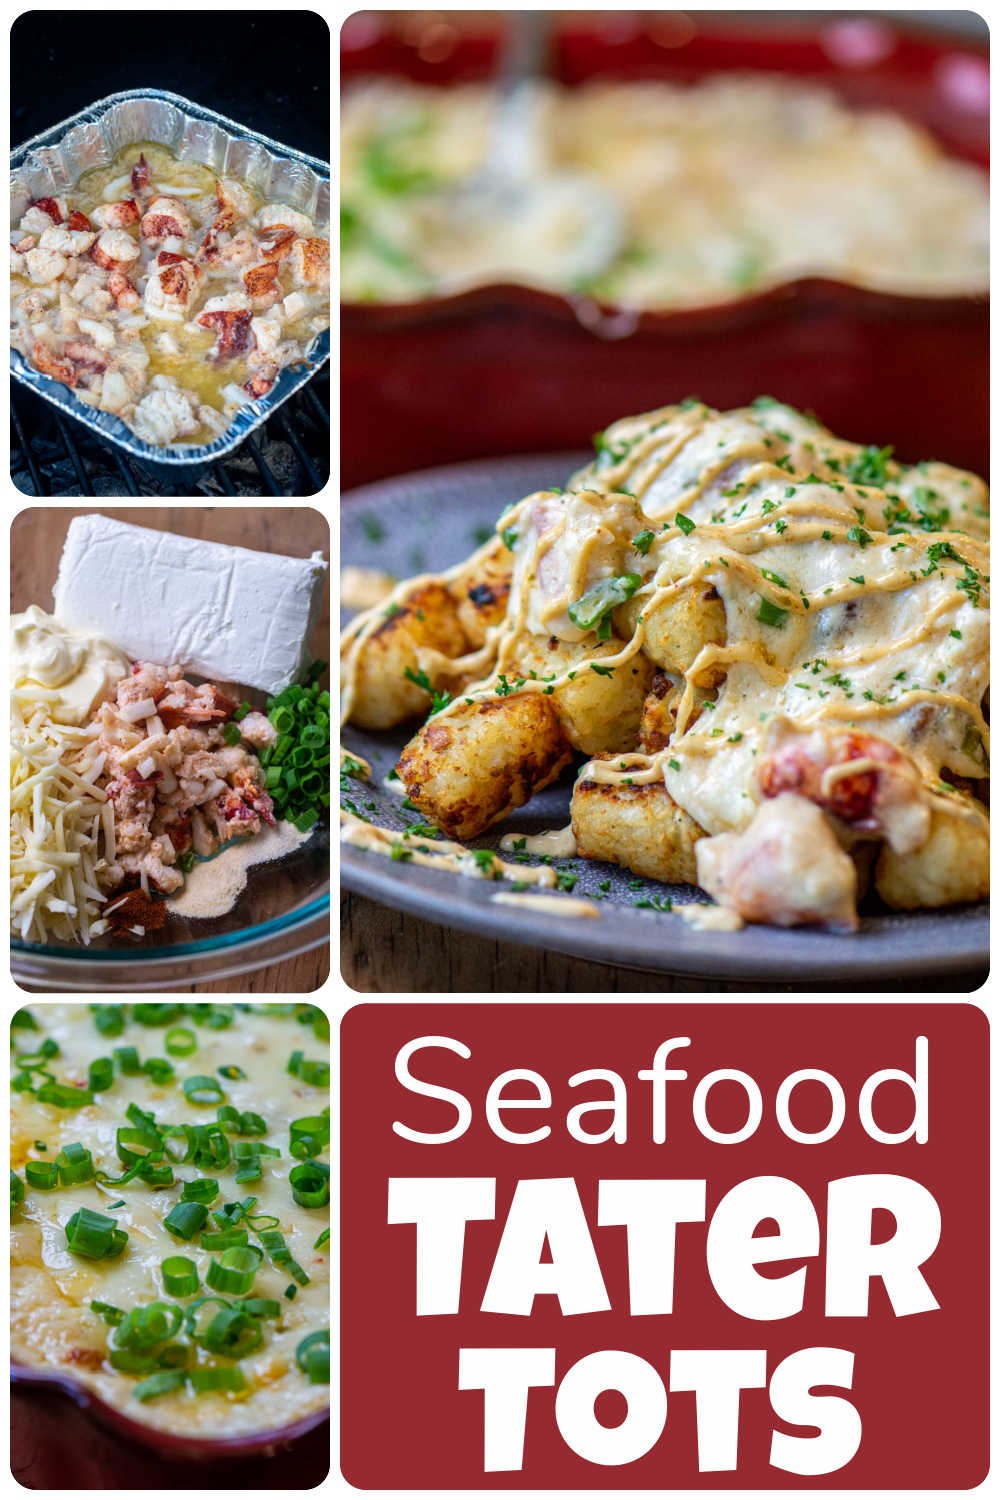 Grilled Seafood Tater Tots with Creamy Remoulade Sauce {50 Minutes}